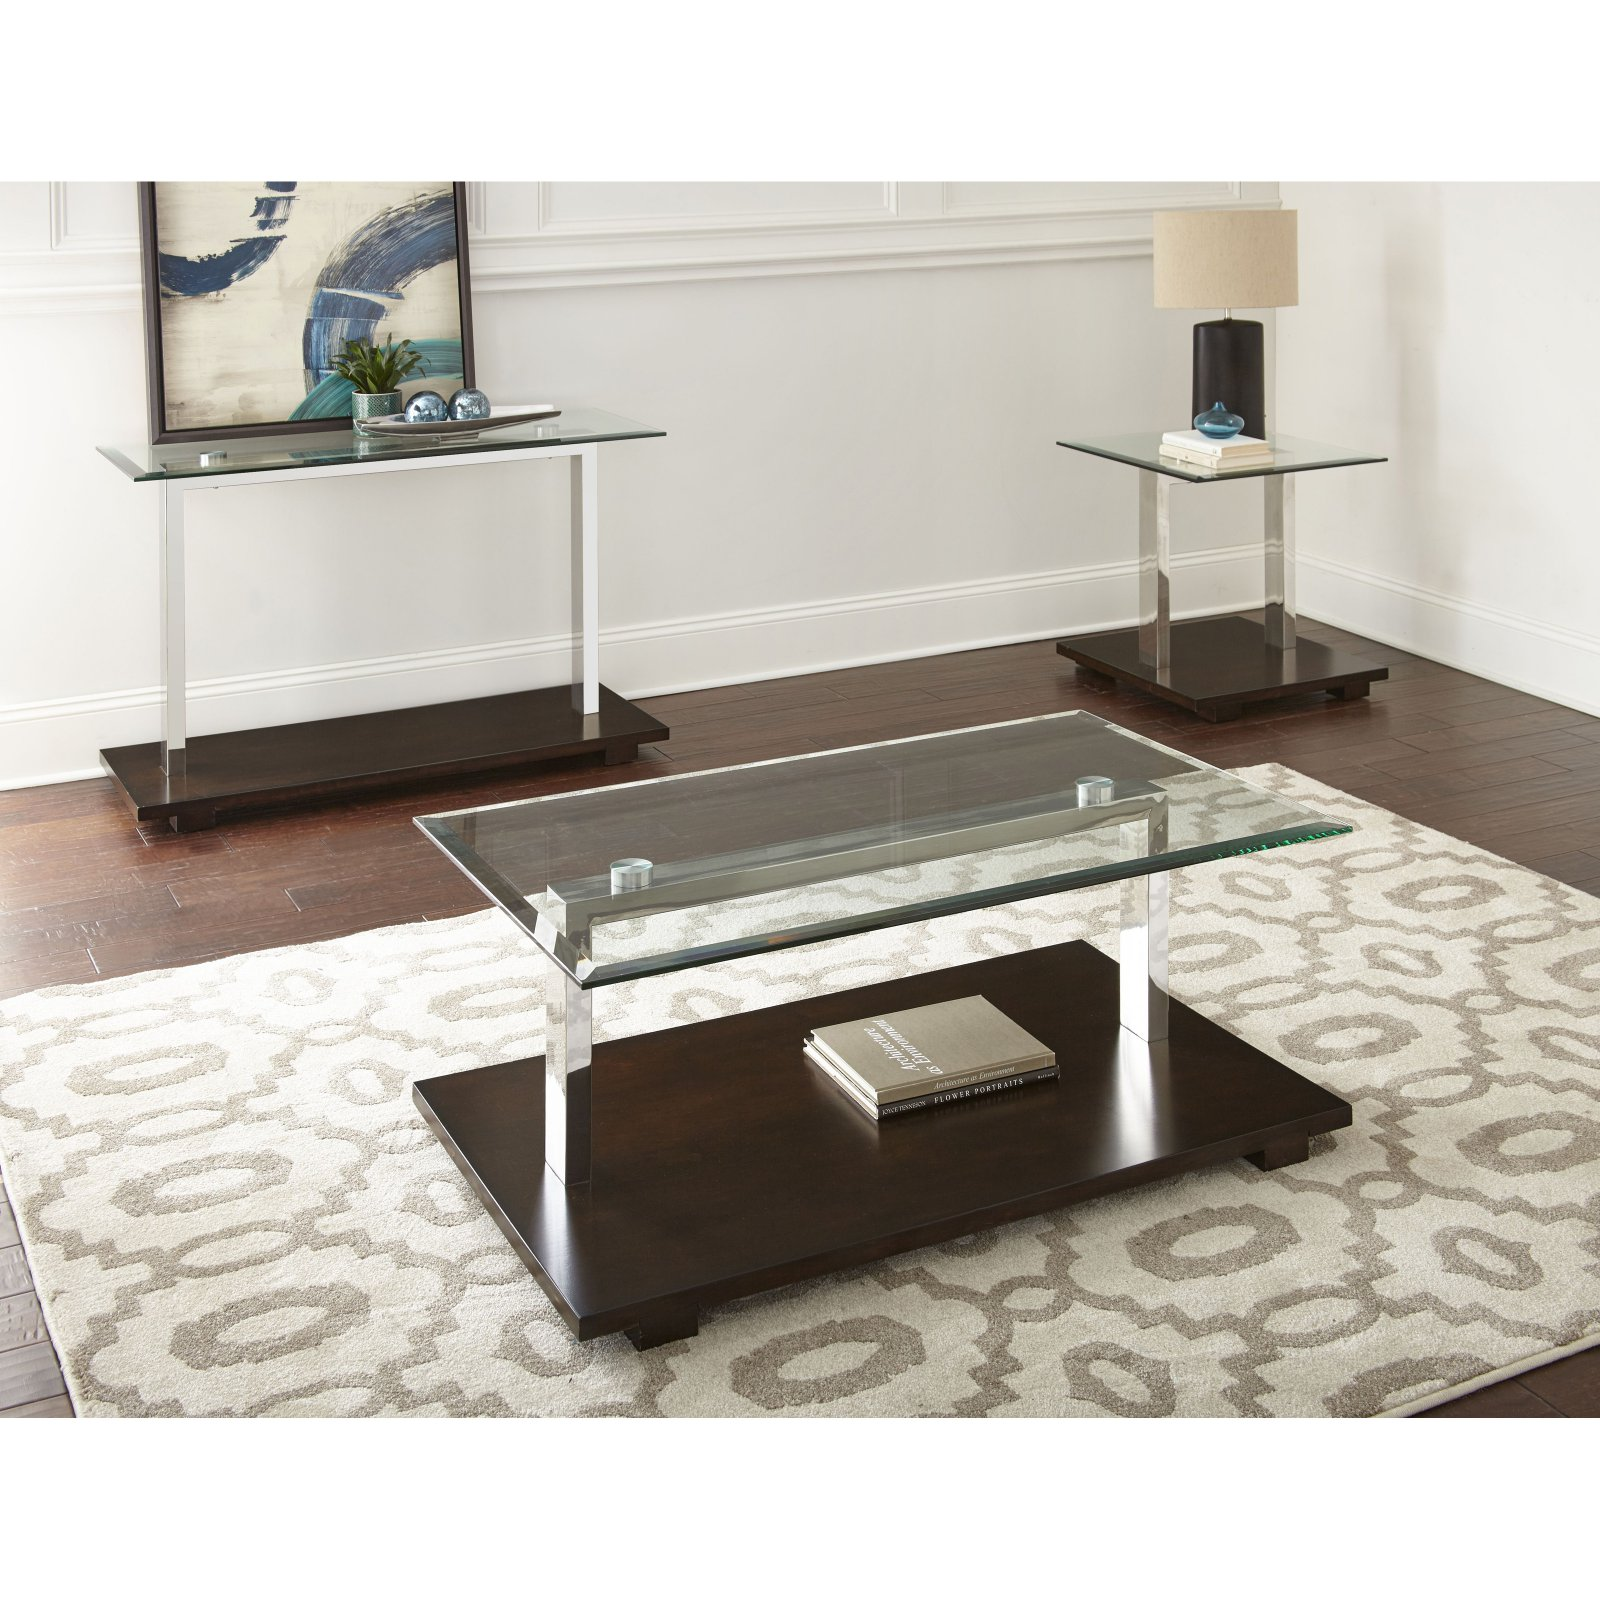 how to make a sofa table top electric blue leather steve silver kessy walmart com